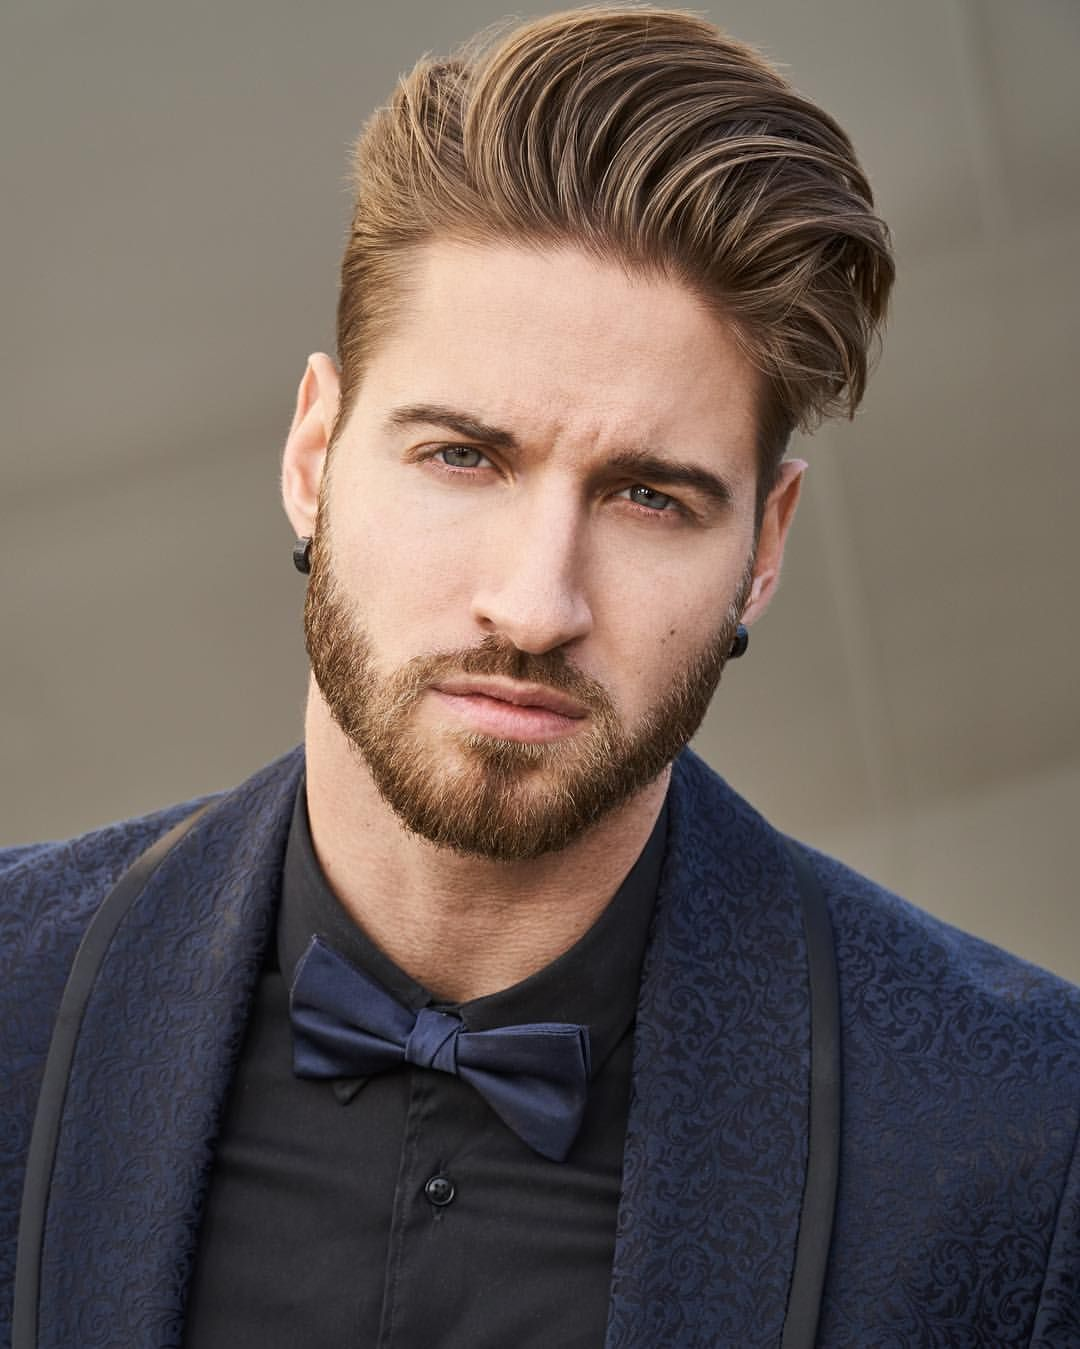 Medium short haircut men travg   mens hair u beards  pinterest  travis